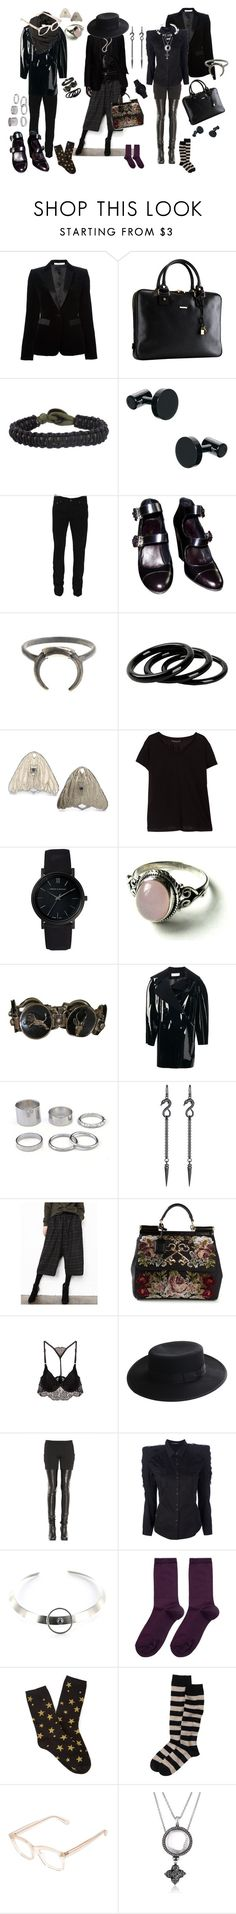 """3 outfits for Drake-ish"" by lemon-pirating-sea-raptor ❤ liked on Polyvore featuring Givenchy, Mark/Giusti, Icon Brand, SELECTED, rag & bone, Chanel, Furla, Zarah Voigt, Violeta by Mango and Larsson & Jennings"